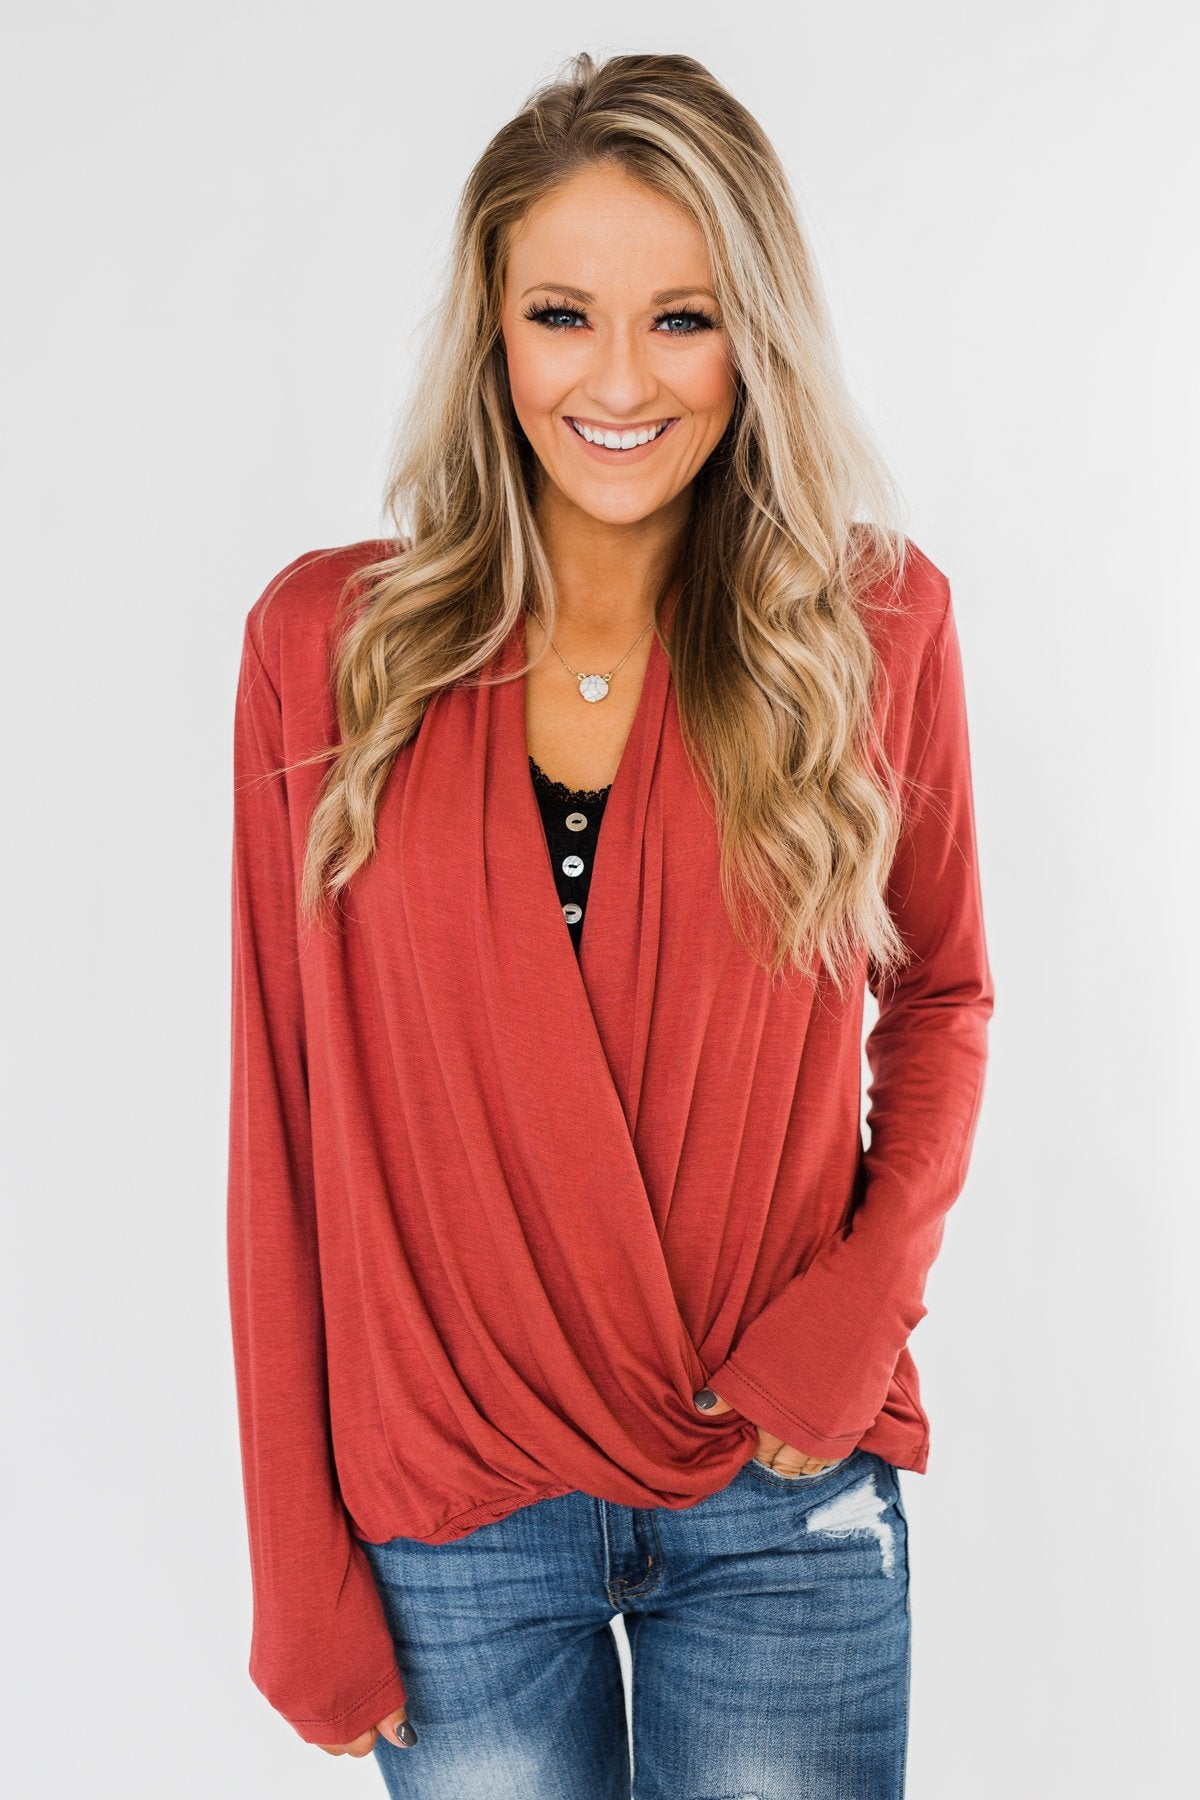 Can't Help This Feeling Front Wrap Top- Rusty Mauve